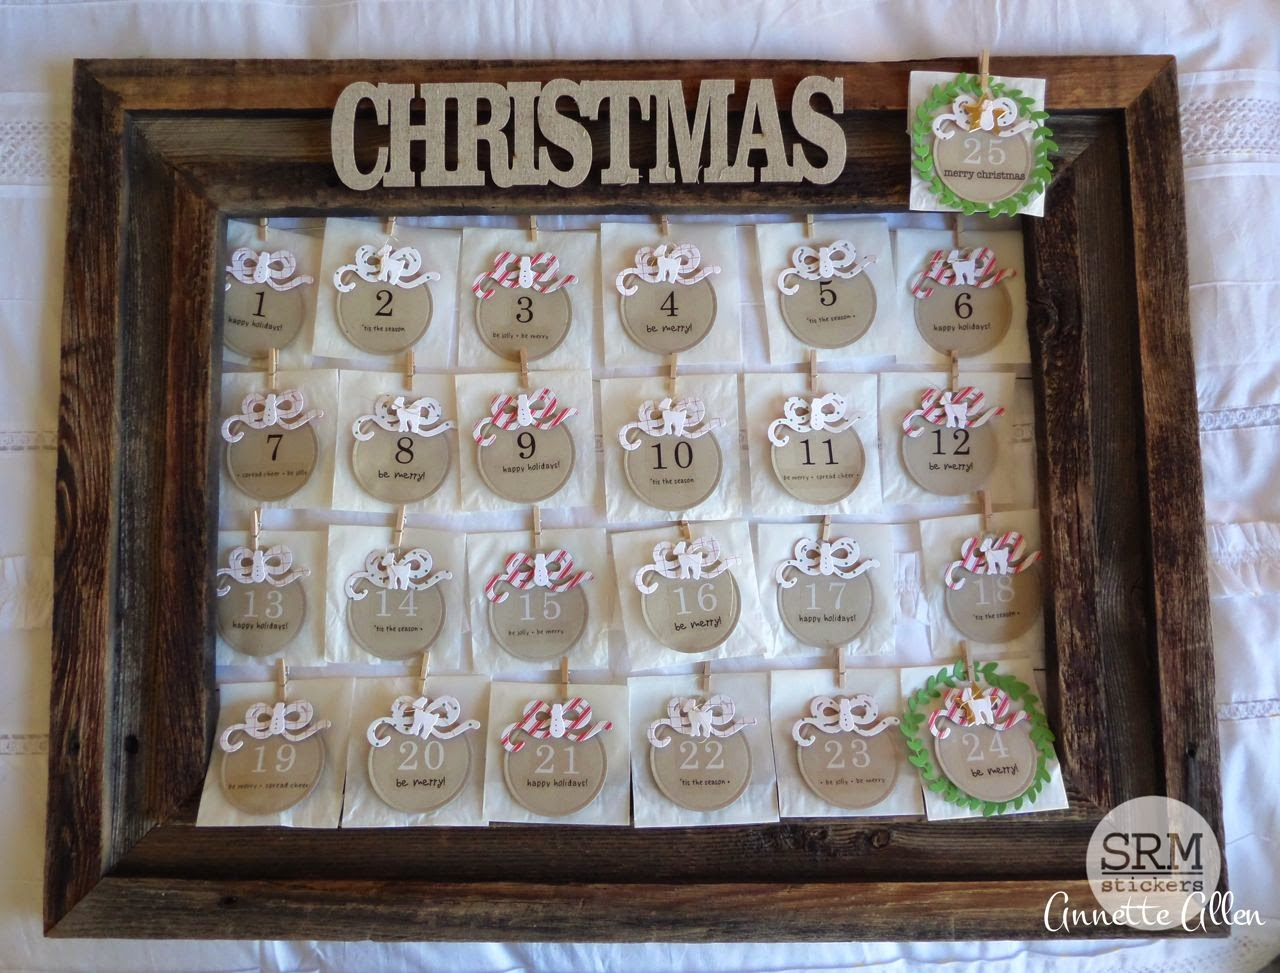 SRM Stickers Blog - Christmas Advent Calendar by Annette - #christmas #calendar #adventcalendar #stickers #glassinebags